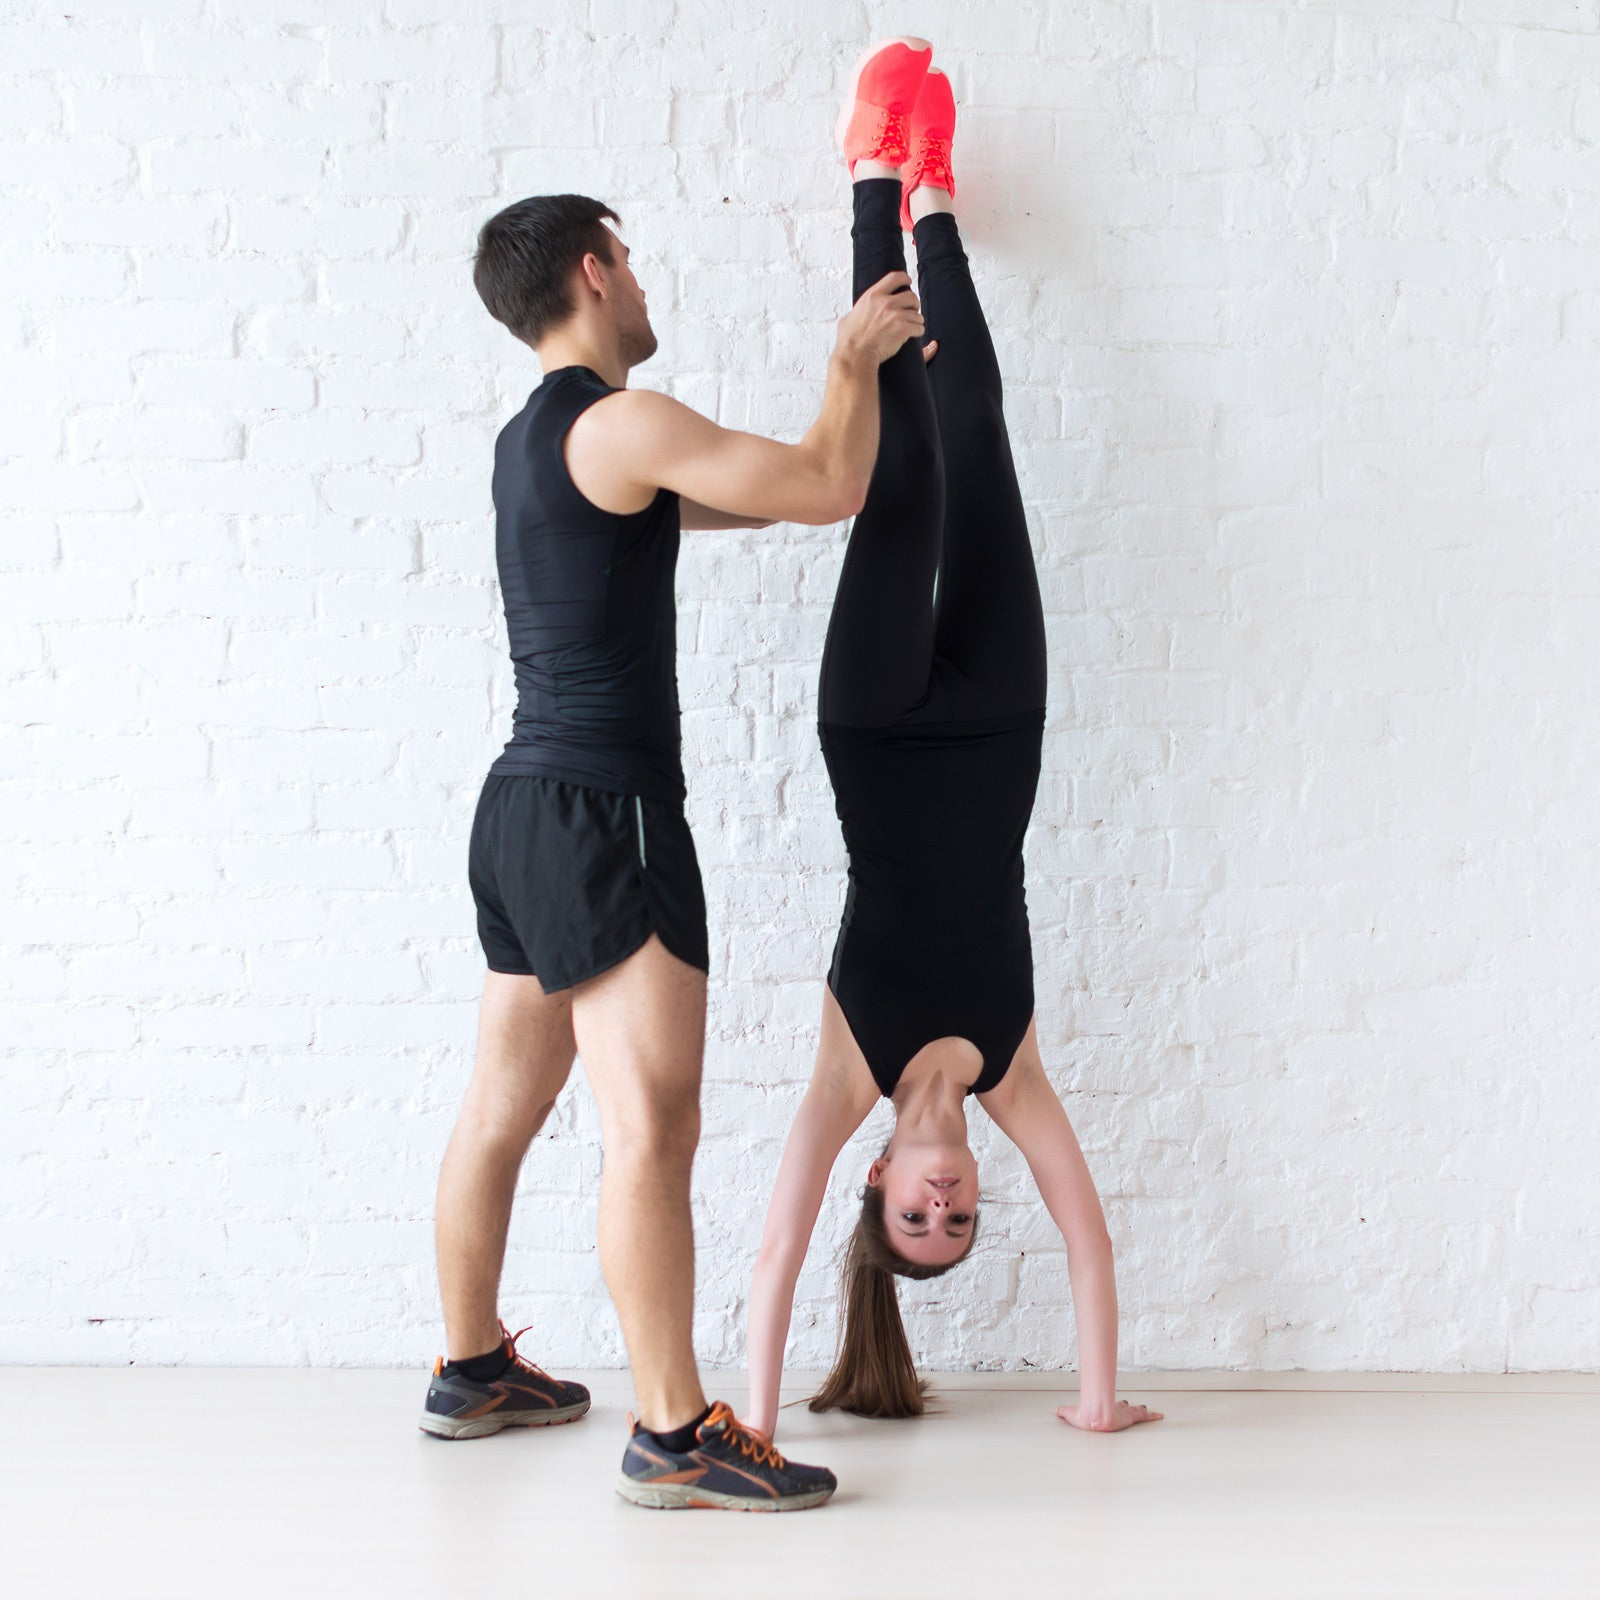 Handstand Exercise ProSource Blog